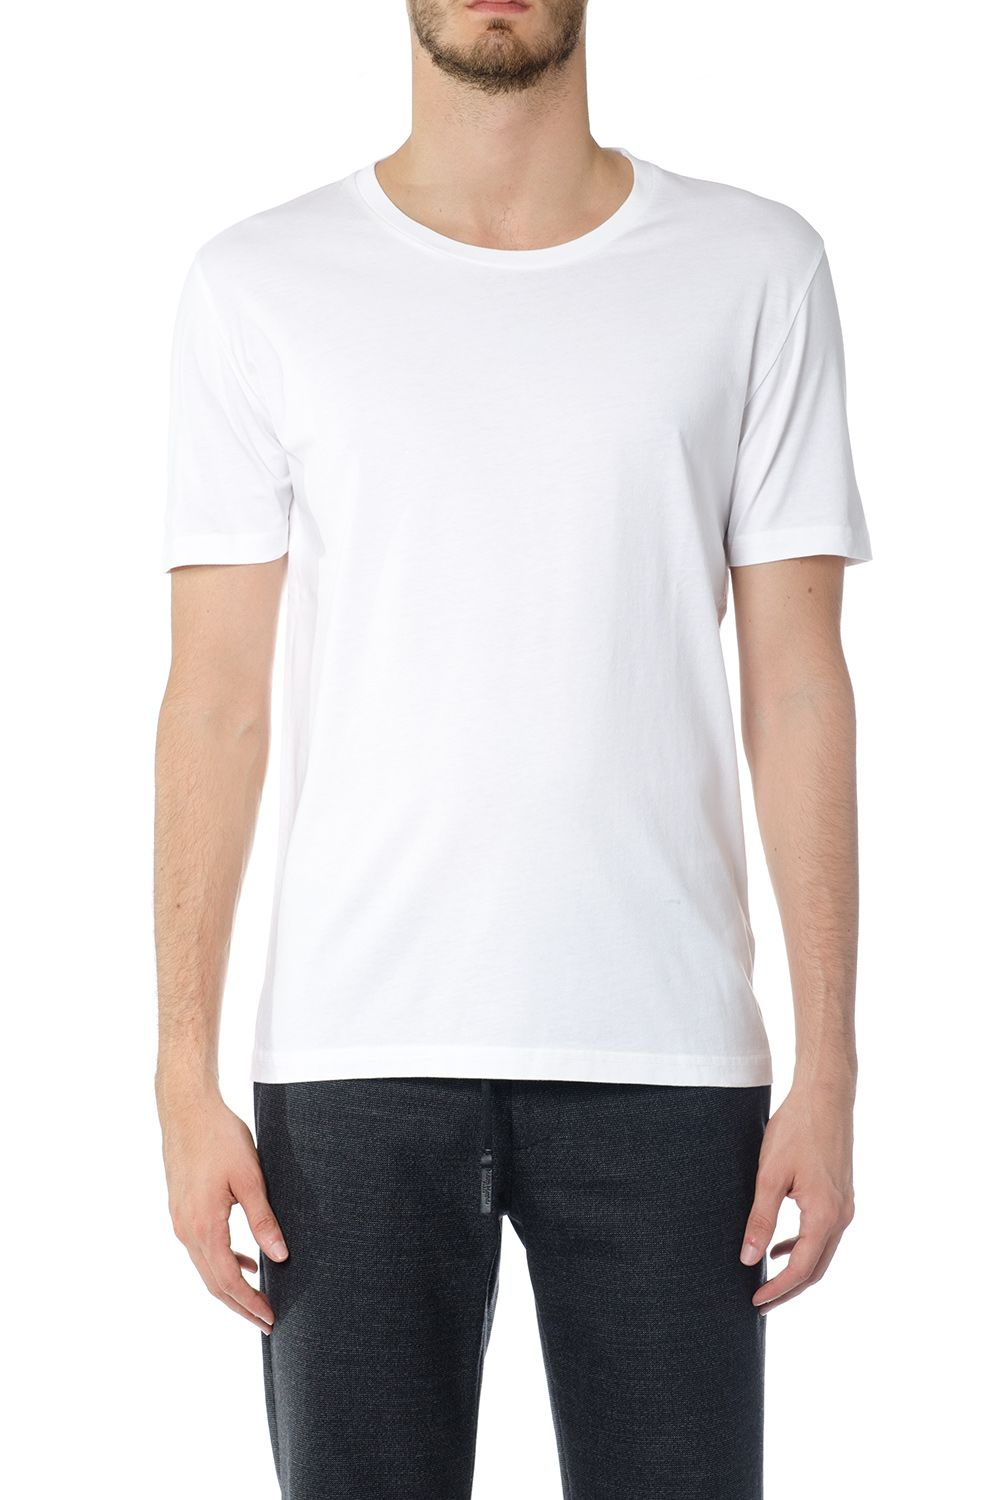 Maison Margiela Crew Neck T-shirt In Cotton